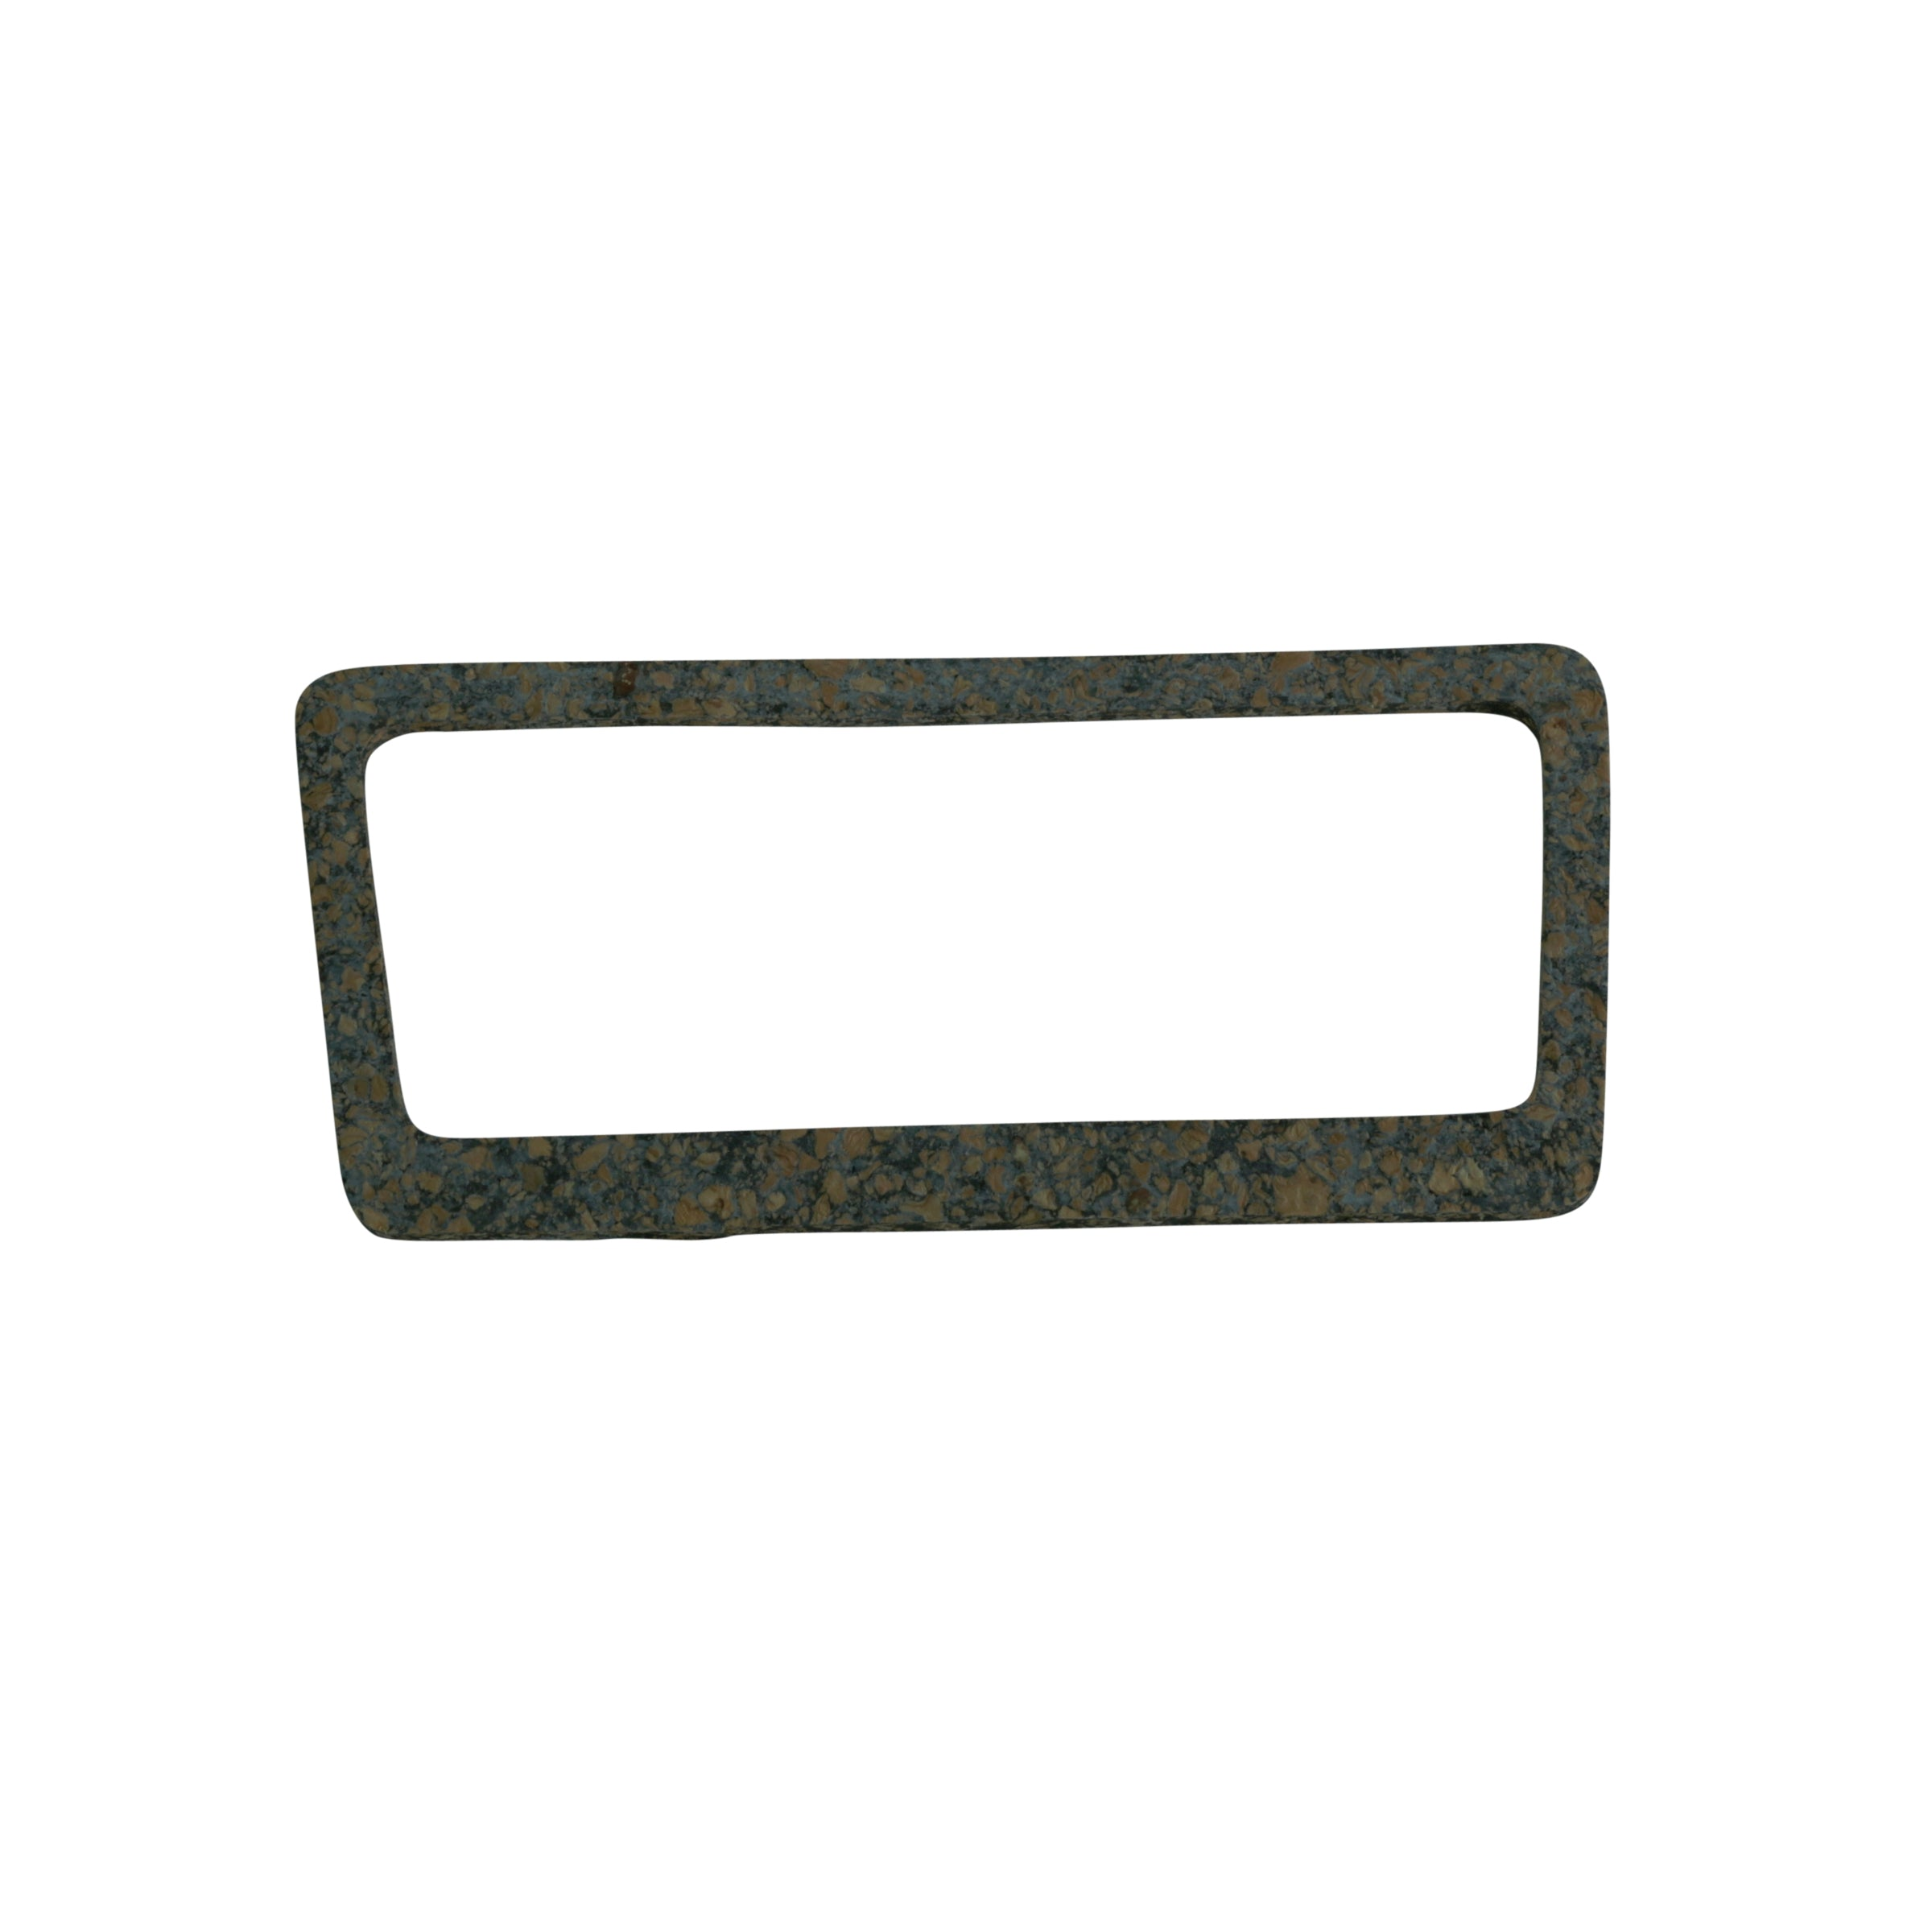 License Light Lens Gasket • 1937 Ford